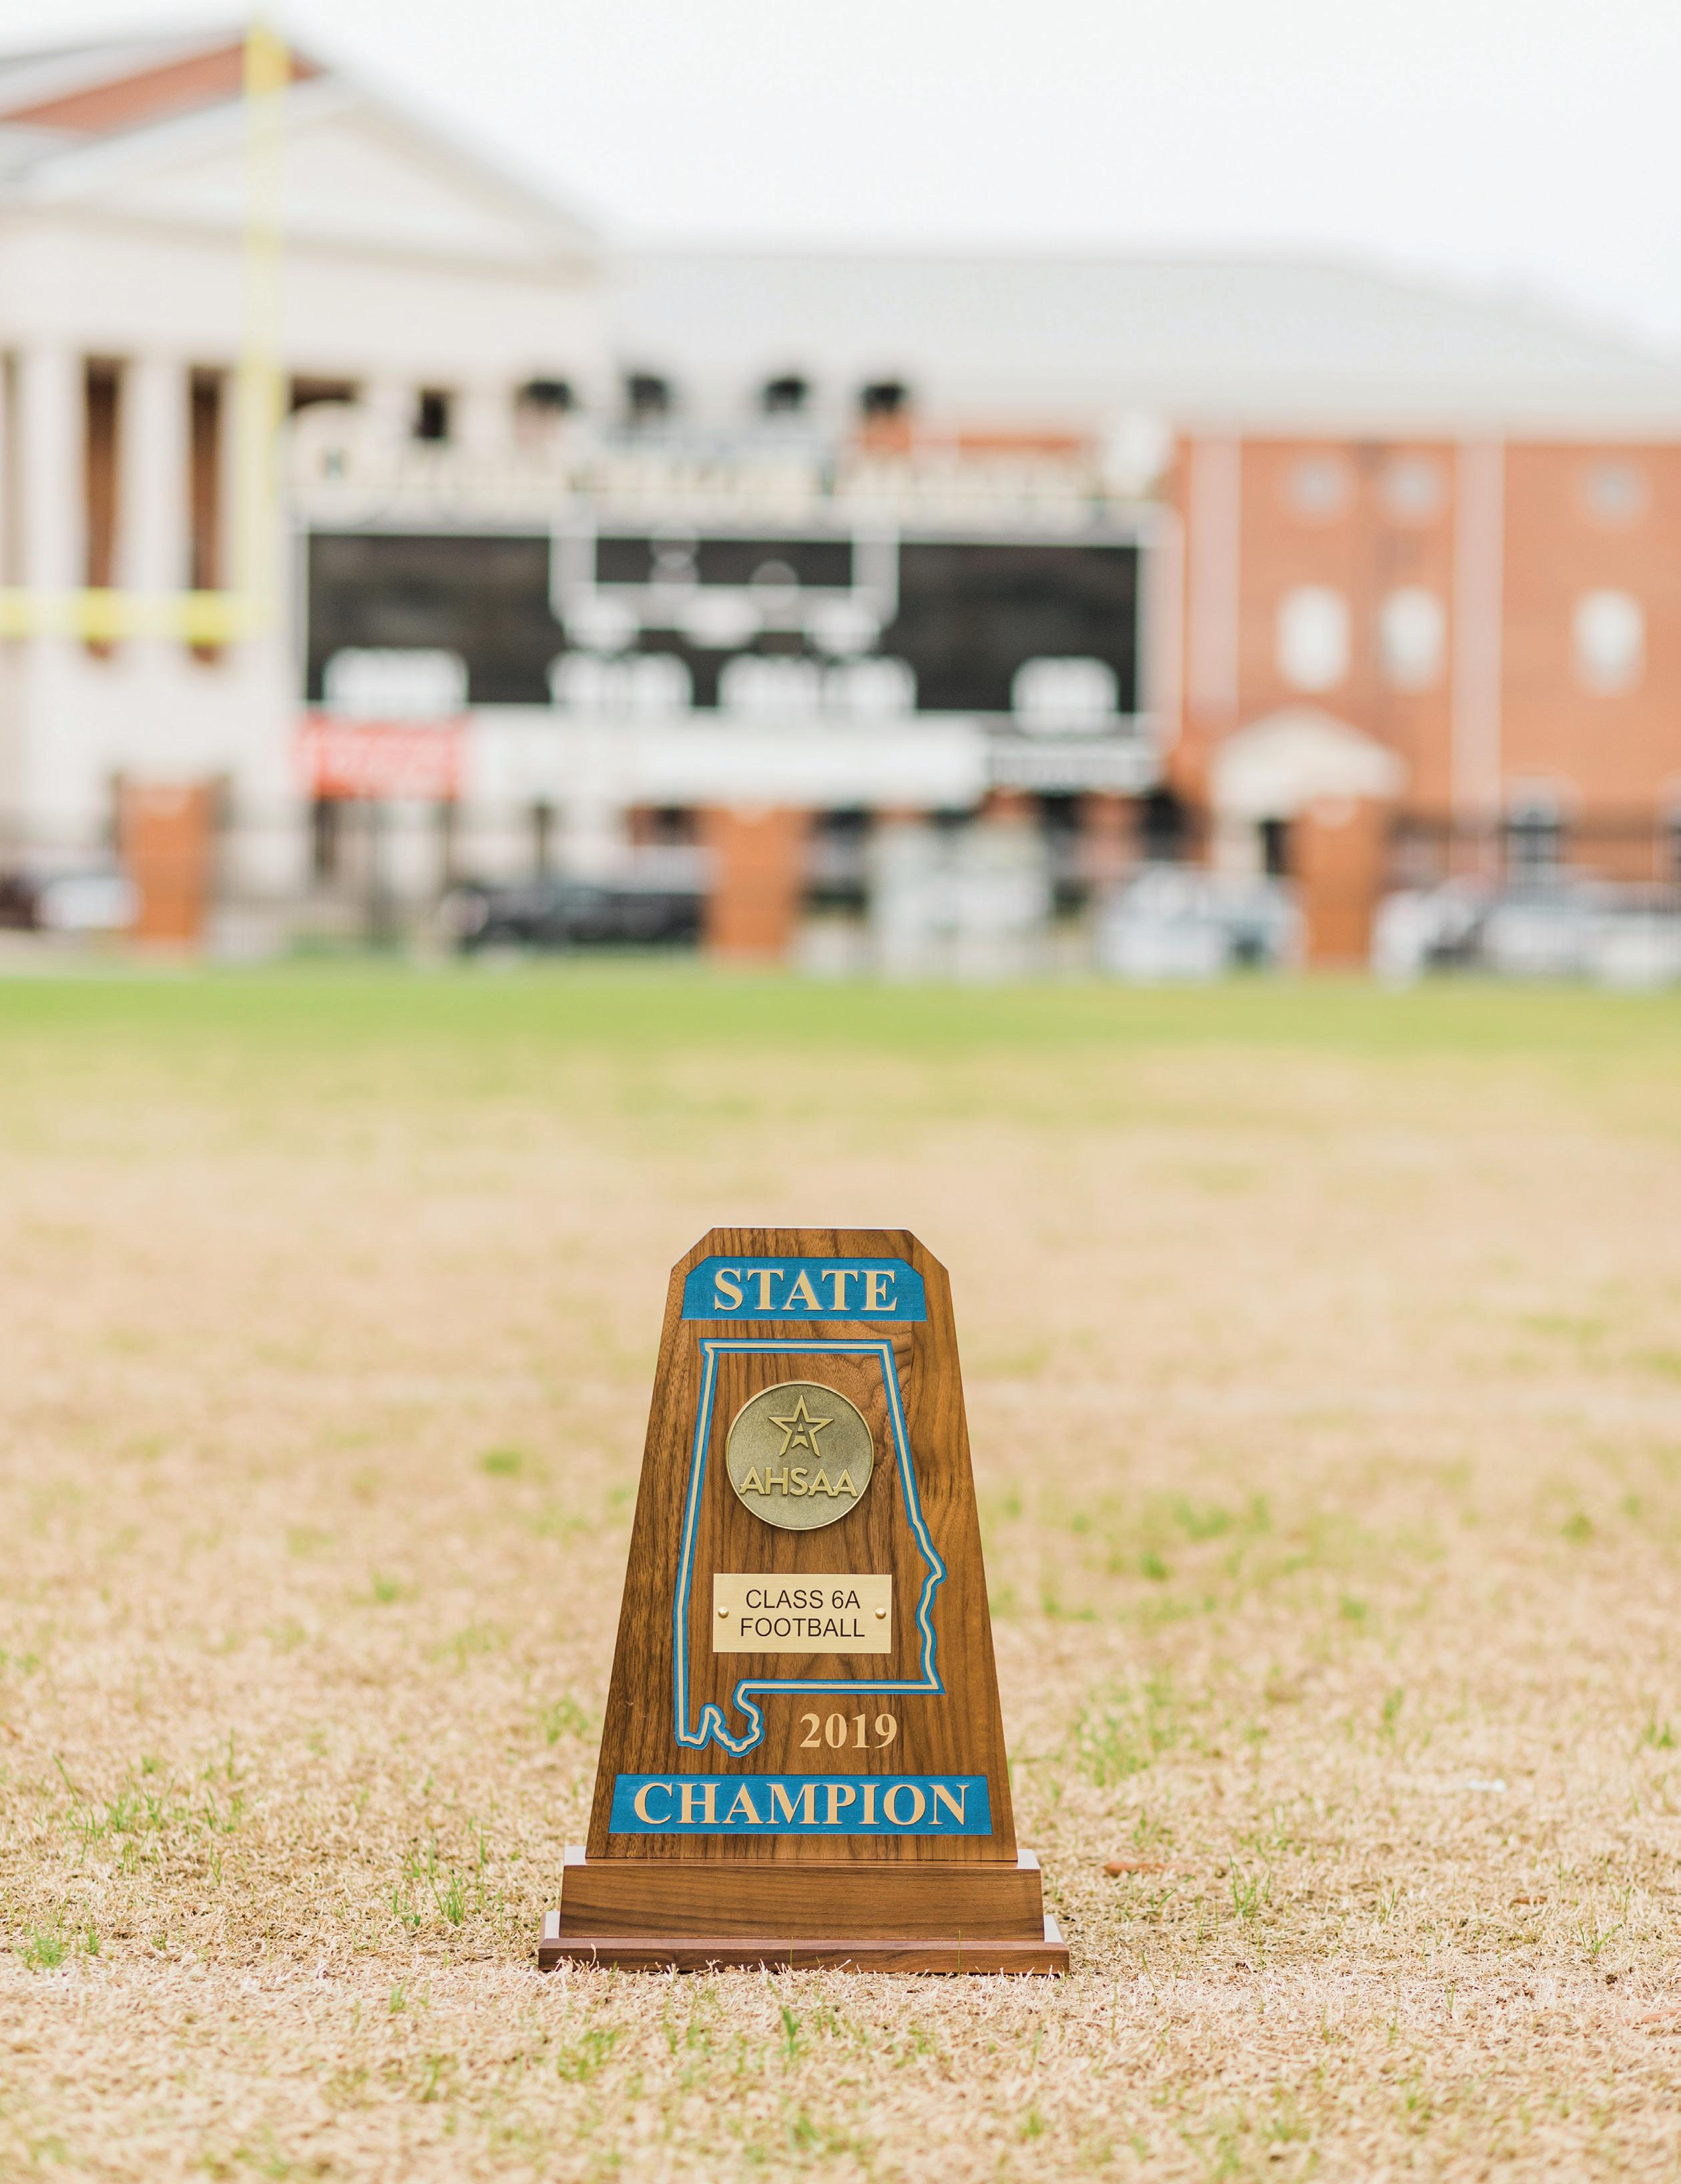 Page 46 of Savoring the Moment: An Oxford teacher reflects on the Oxford High School state football championship game